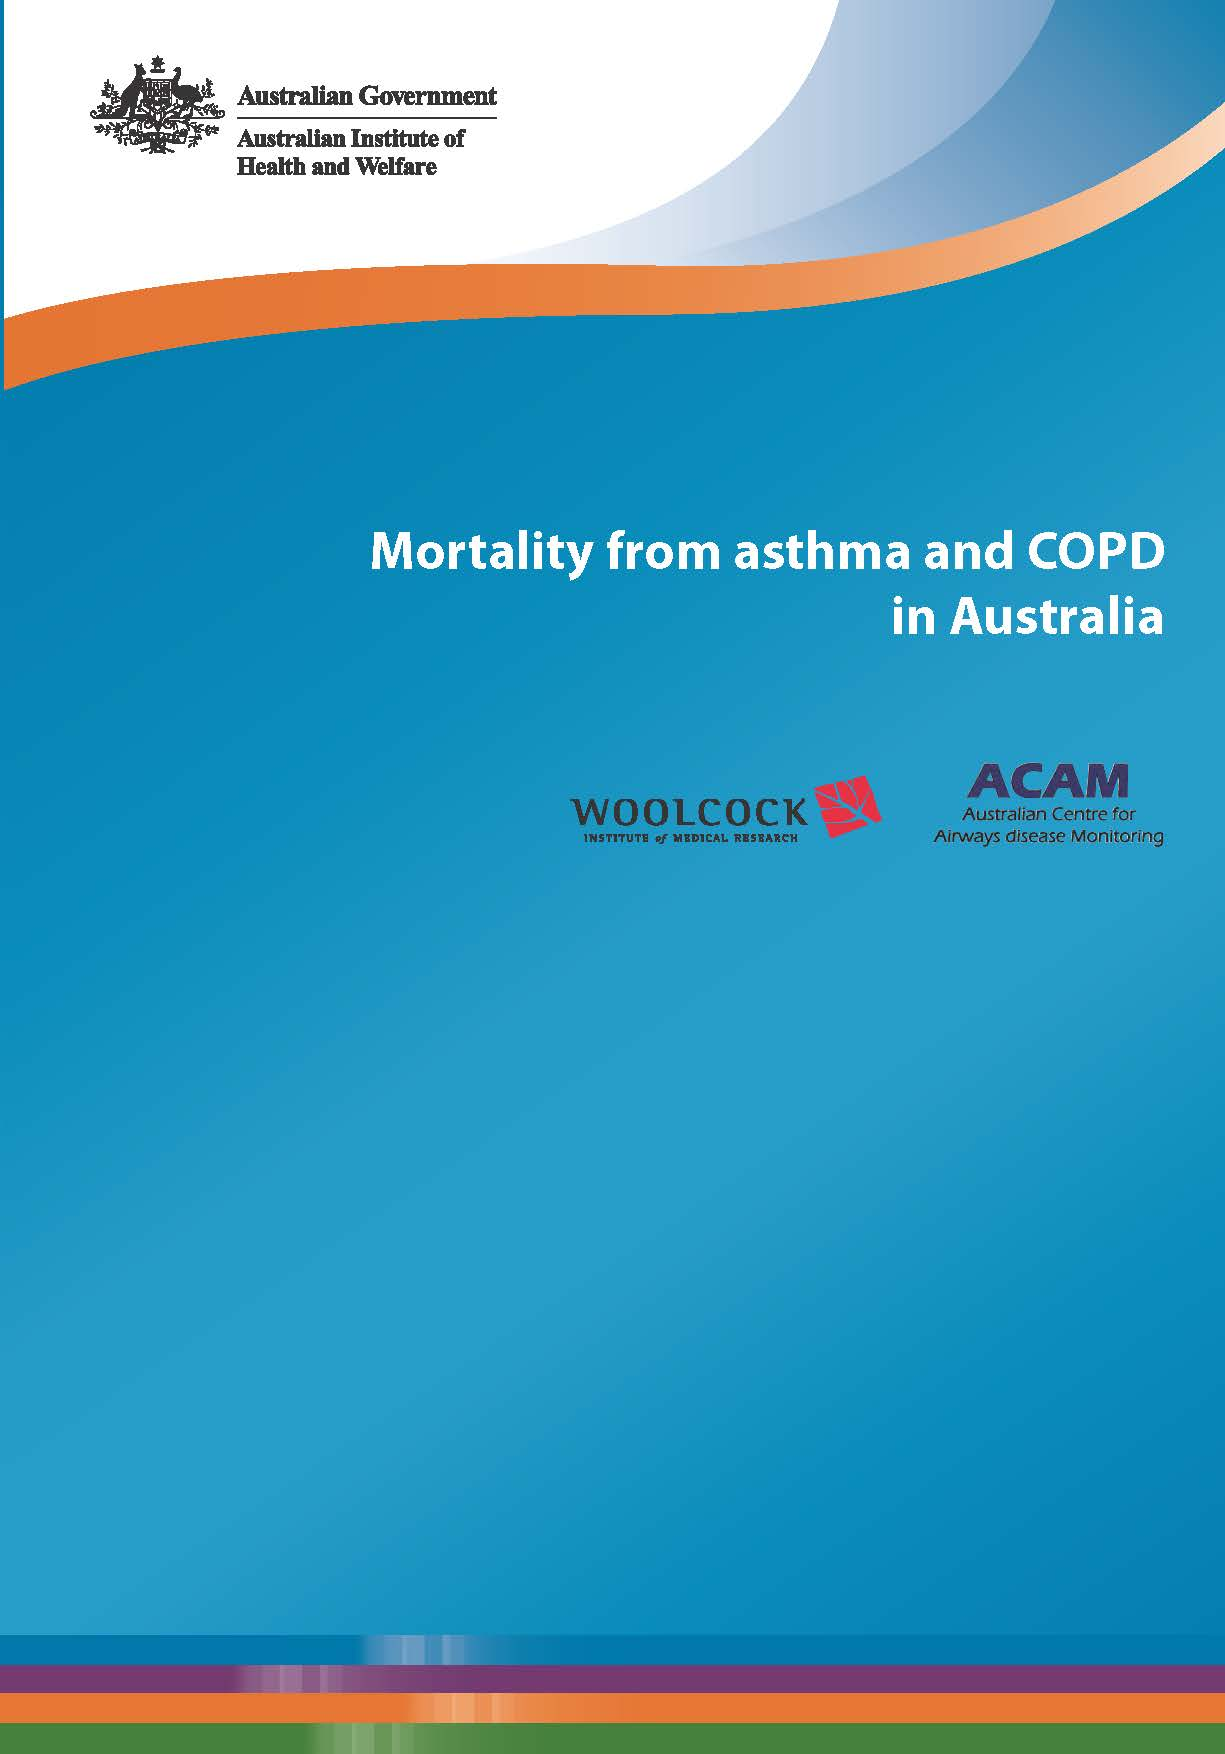 Australian Centre for Asthma Monitoring ACAM